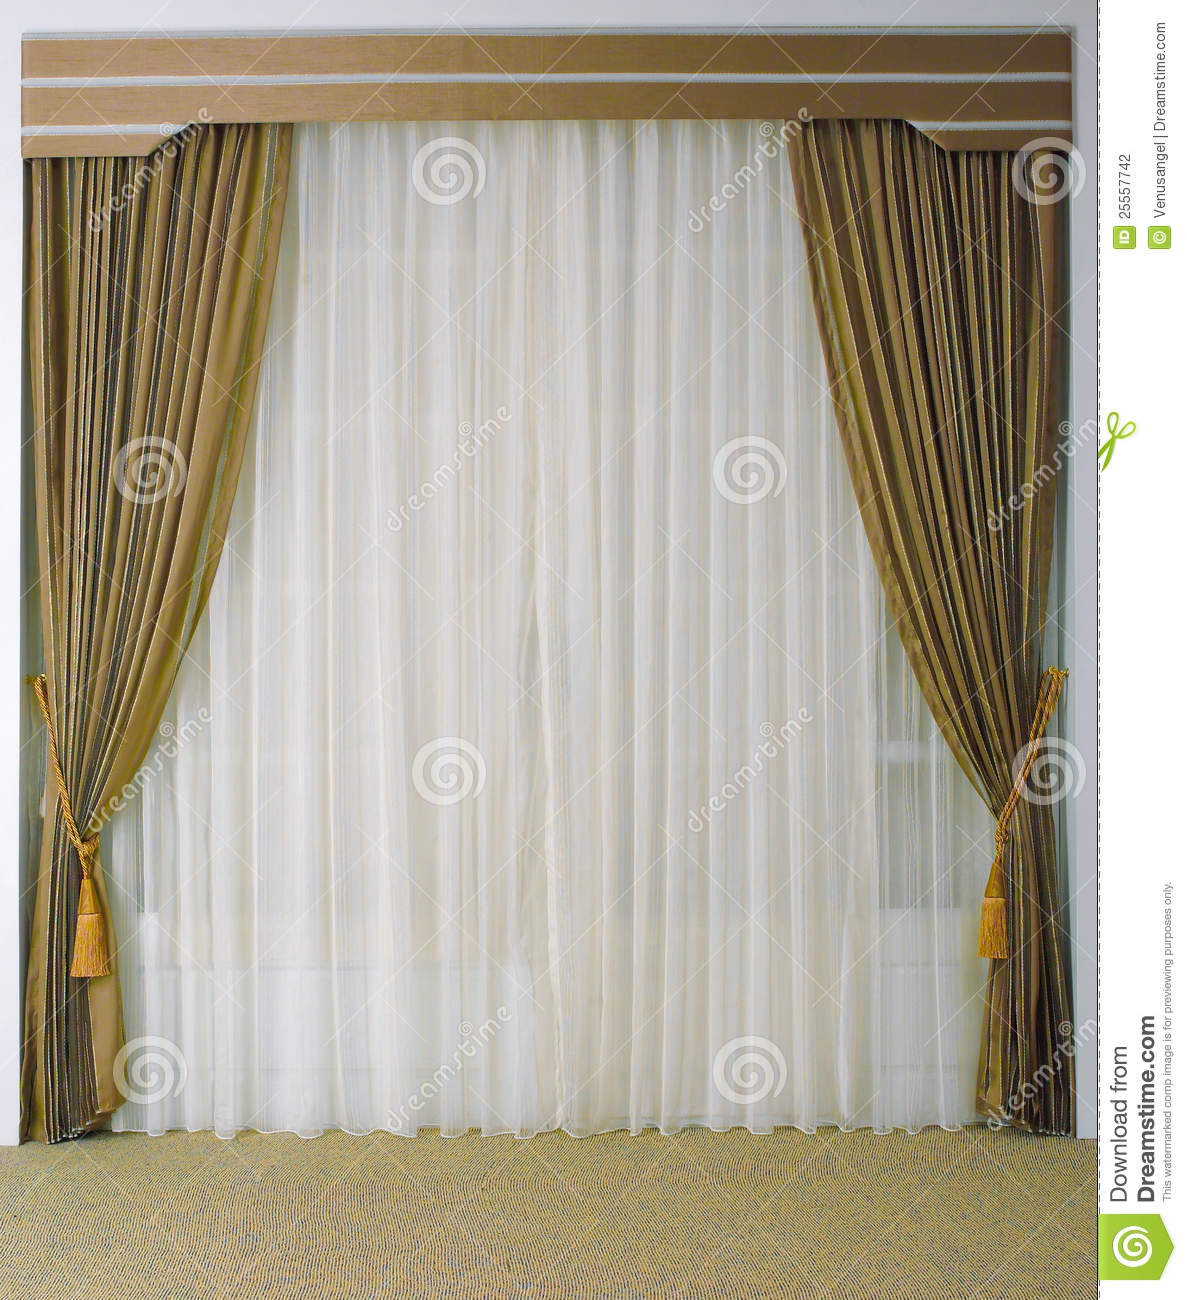 Cost Less Carpet >> Beautiful Curtain And Tassels Stock Photo - Image of decoration, light: 25557742